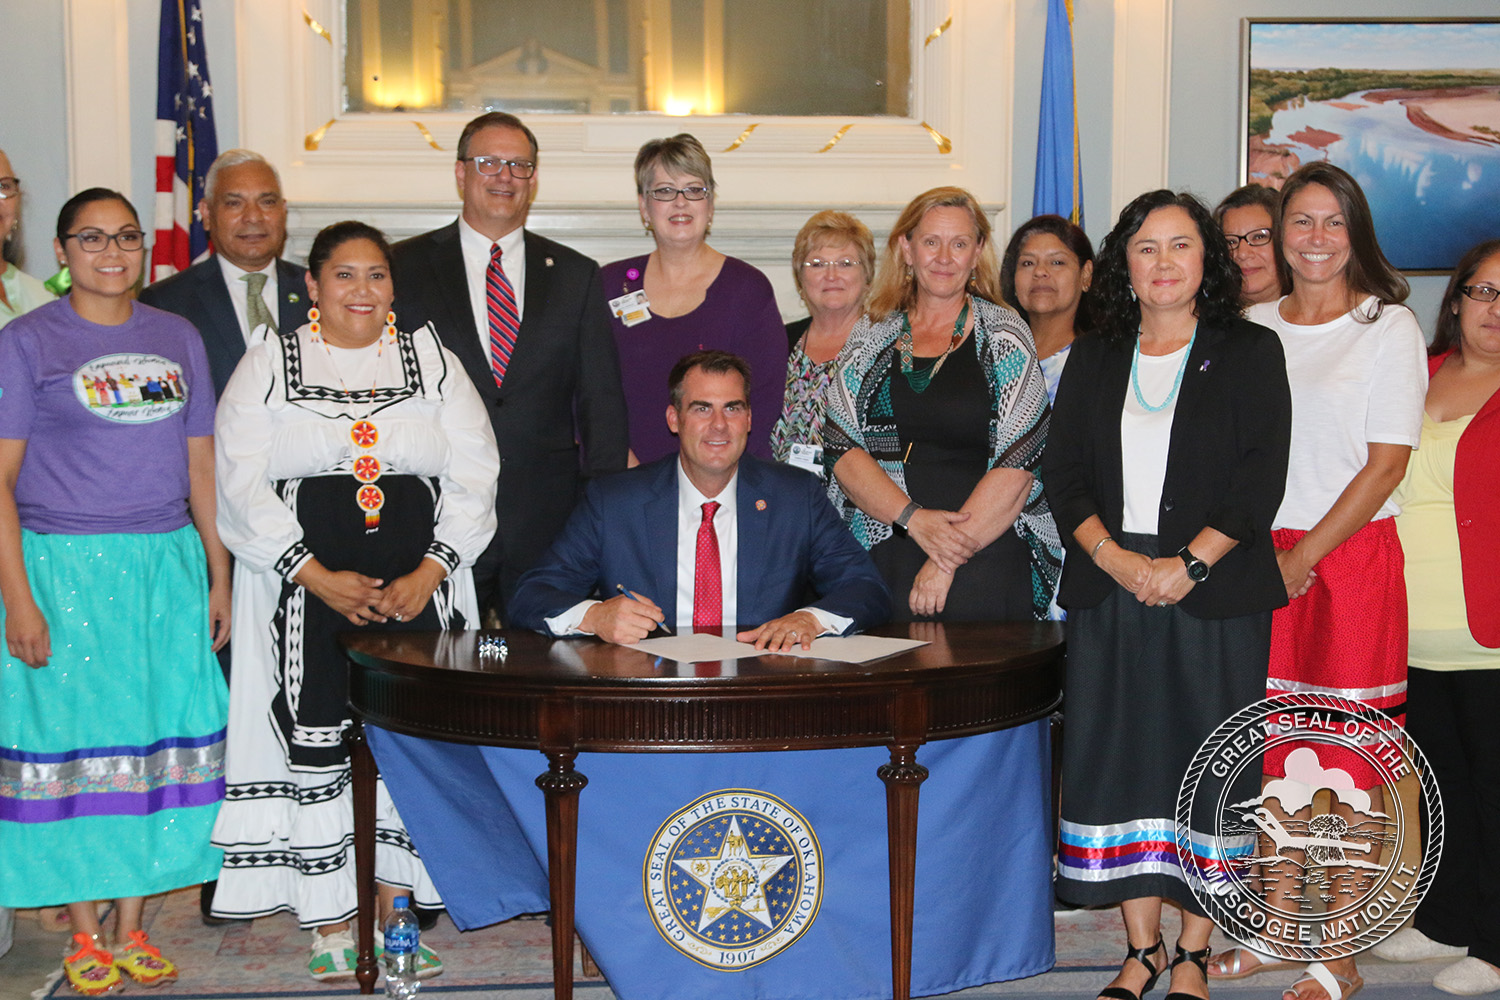 Muscogee (Creek) Nation witnesses Governor sign bill at Capitol